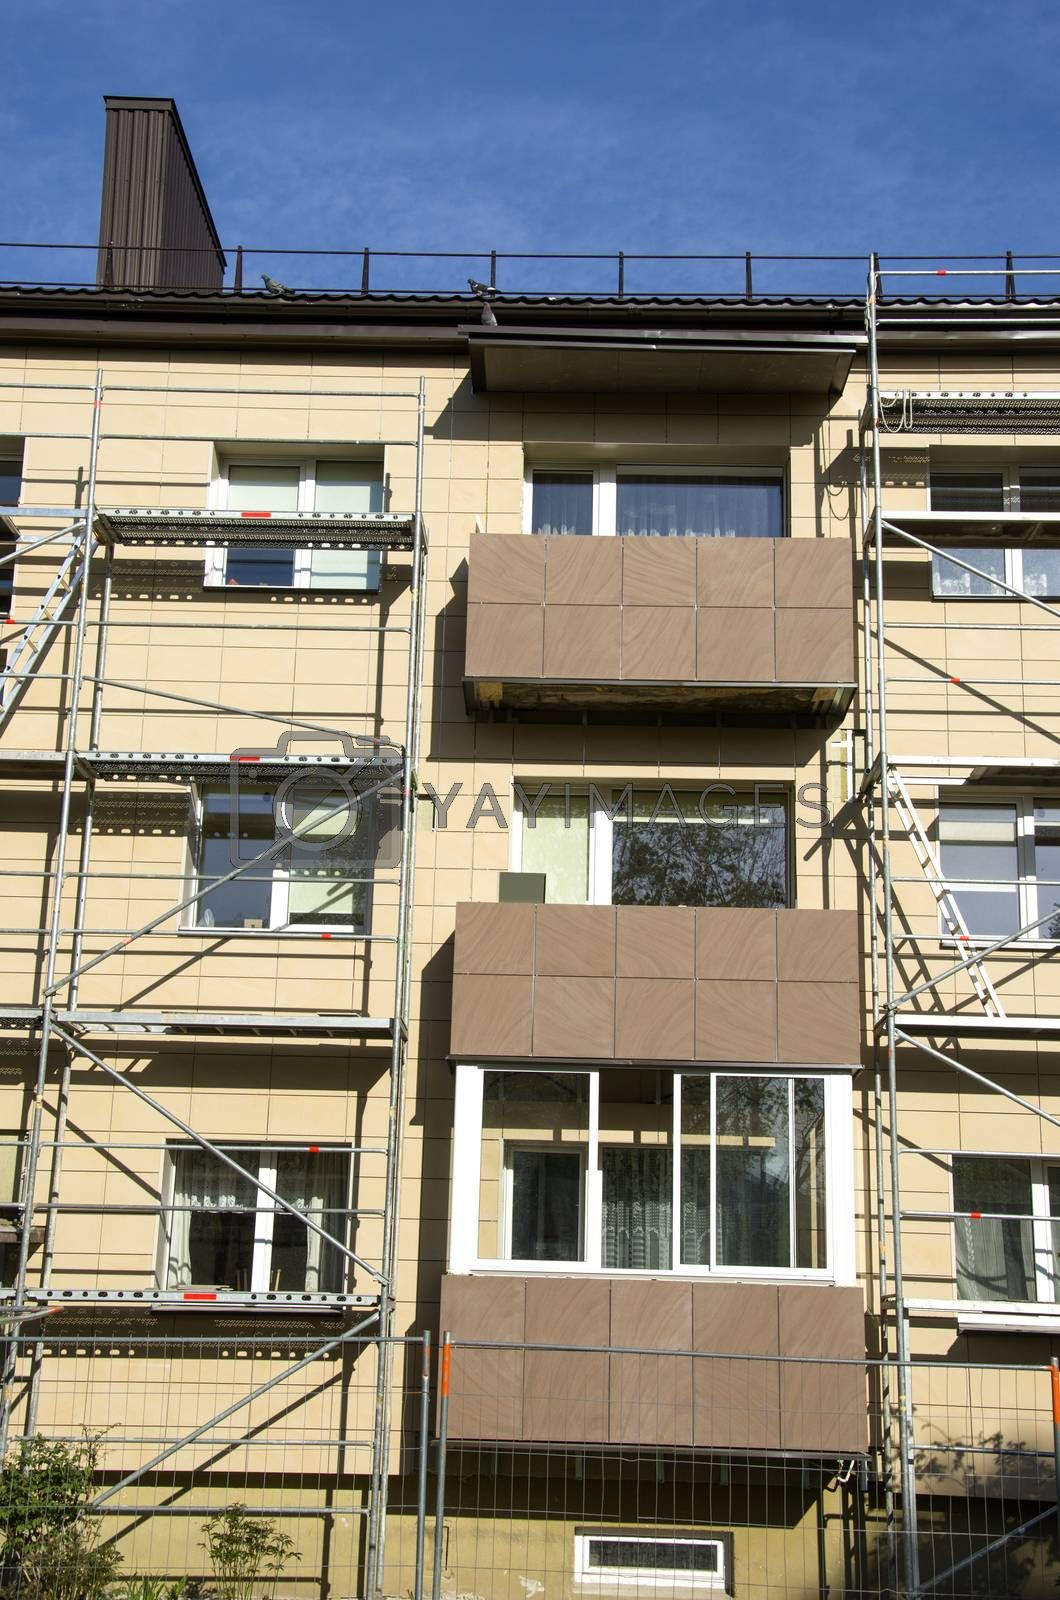 Royalty free image of urban house balcony renovation work place by alis_photo